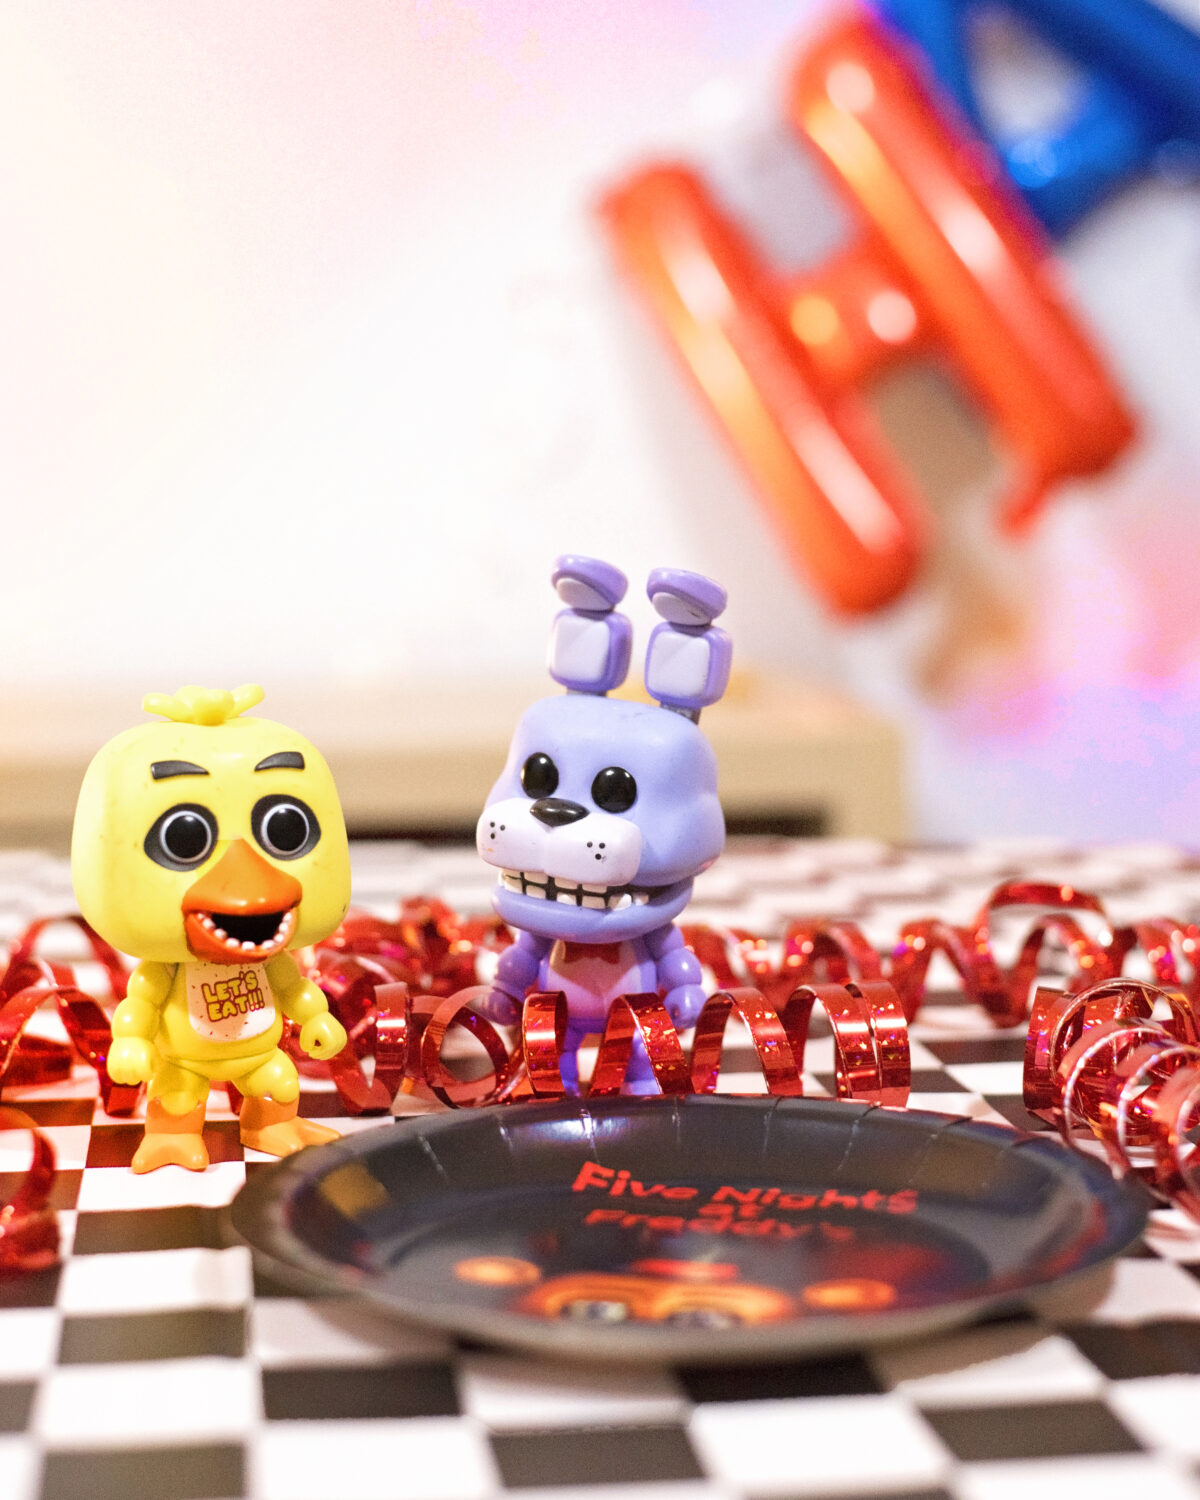 Image shows Party table close up of Pop Vinyl Five Nights at Freddy's figures Bonnie and Chica. They are surrounded by metallic red streamers and there are balloons in the background. Image by keep up with the jones family.